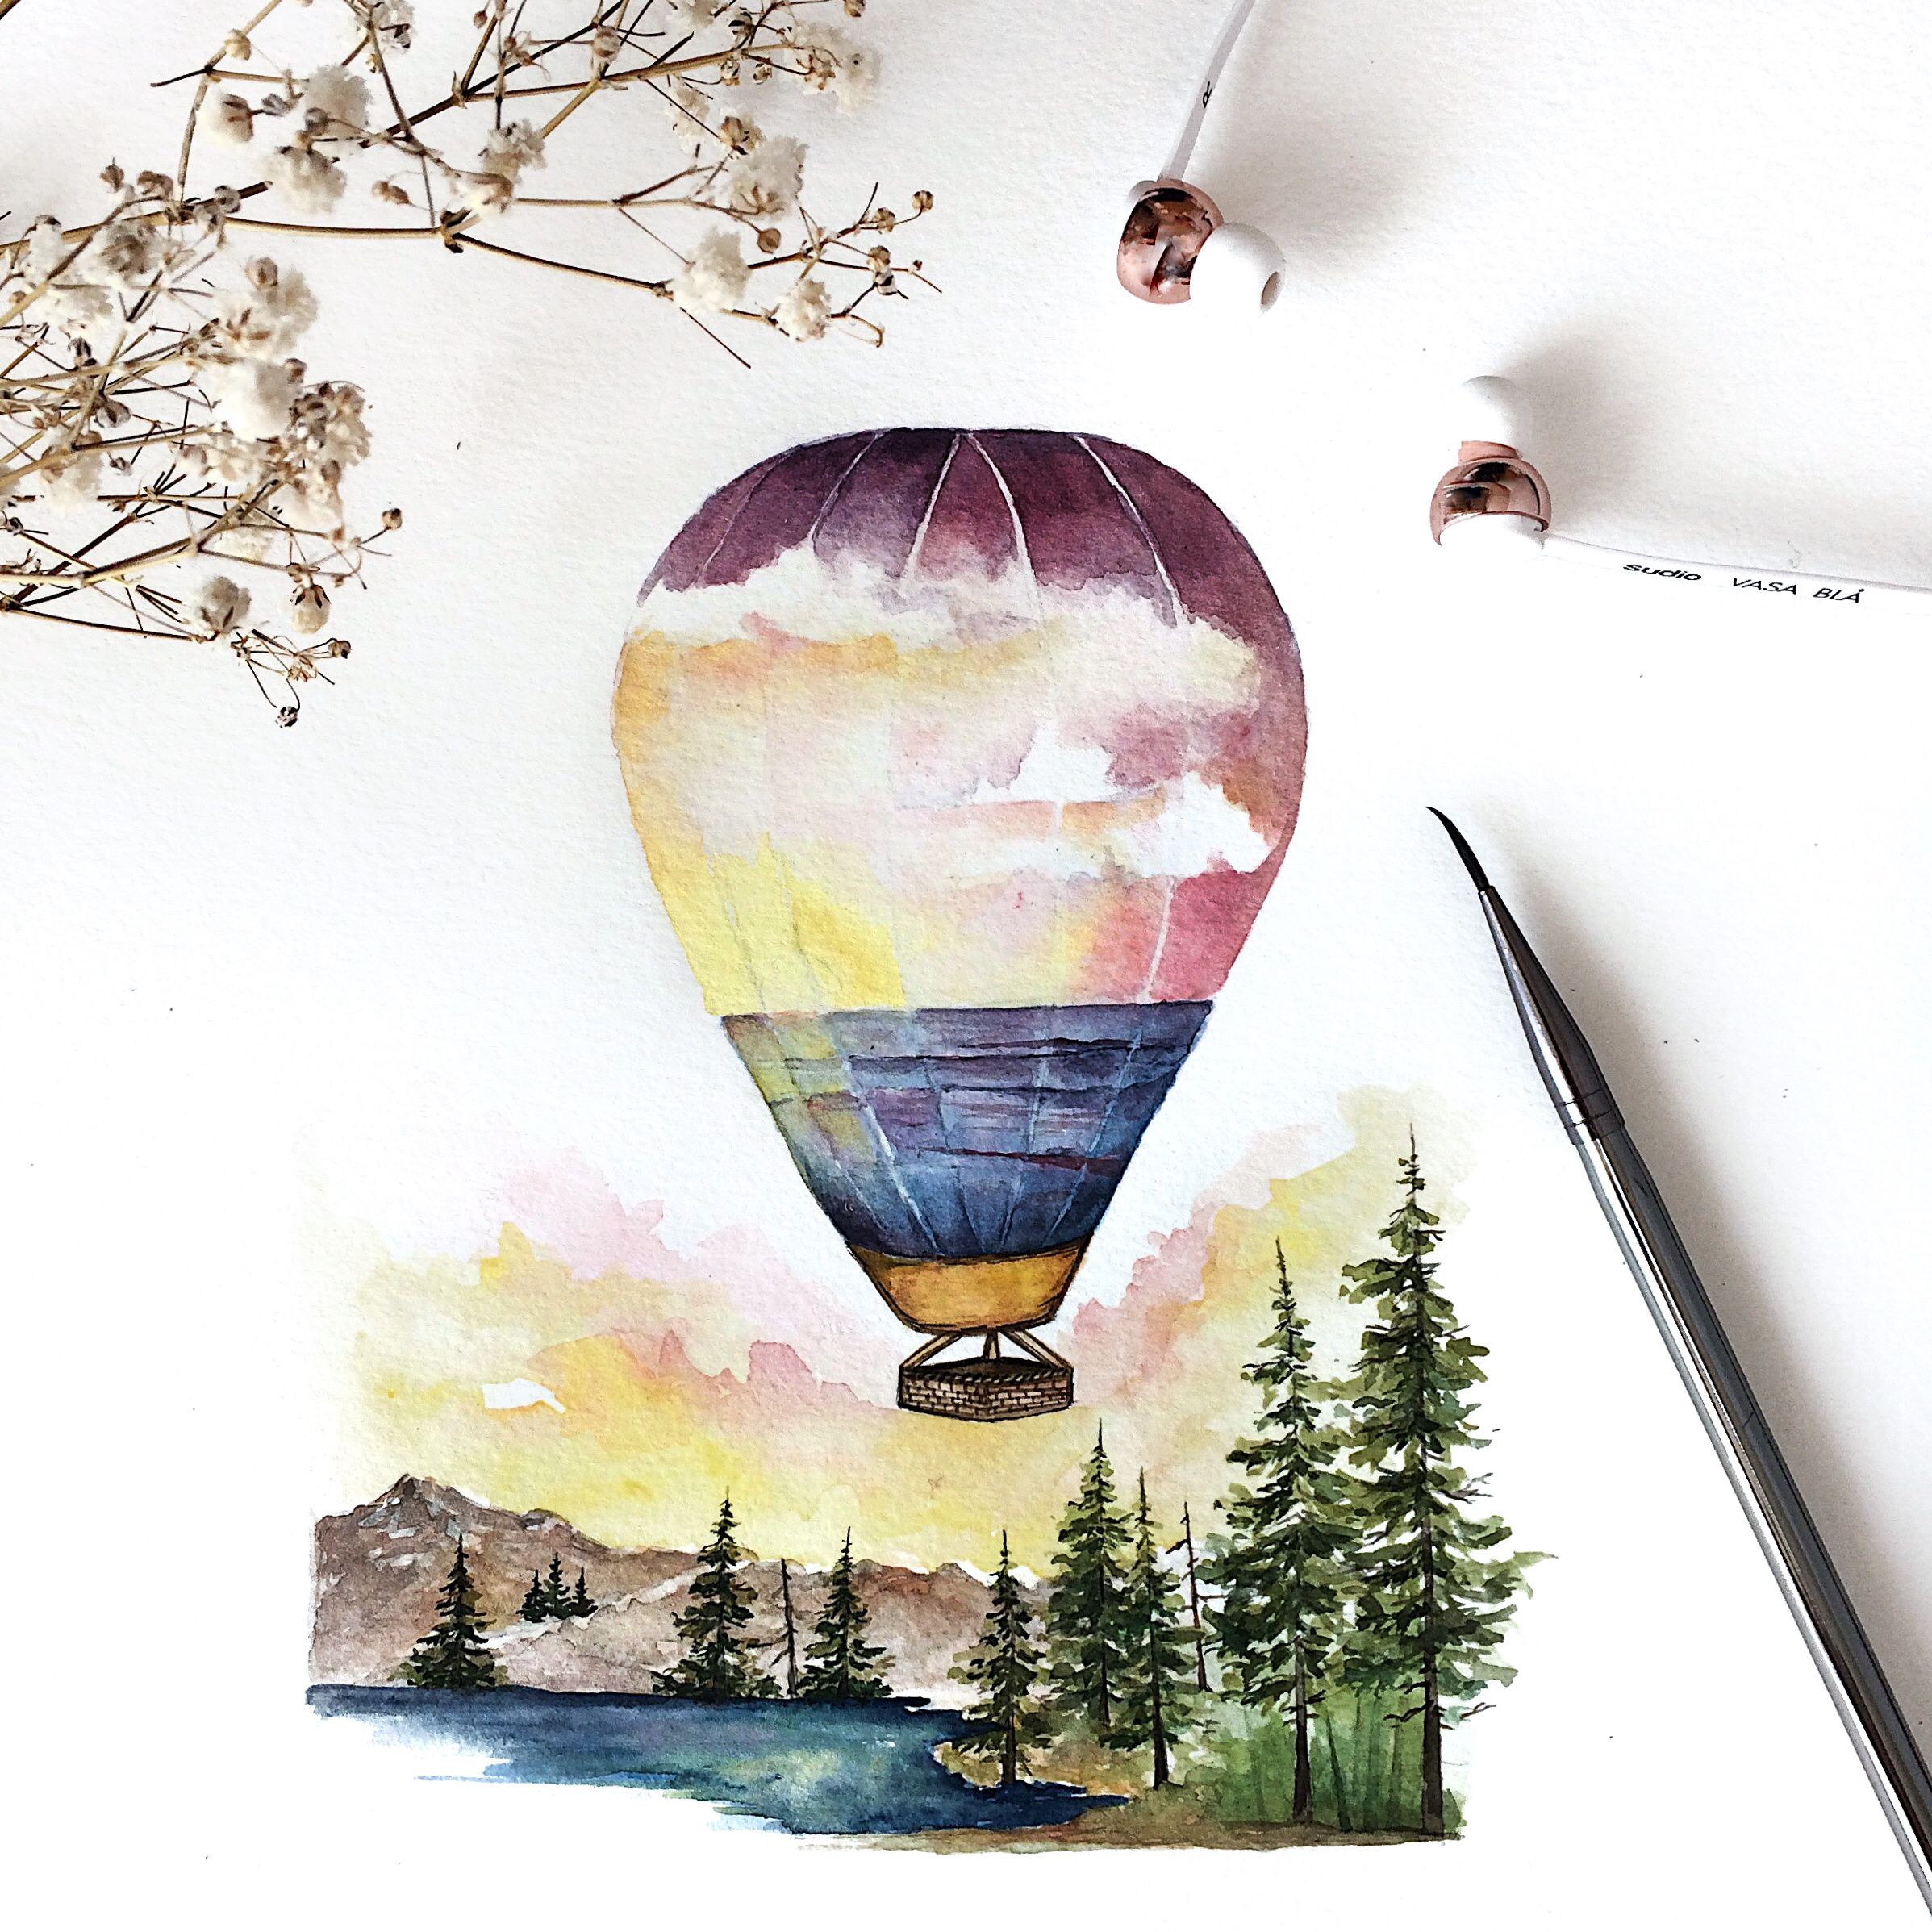 Watercolor Sunset Landscape Painting With The Focus On The Hot Air